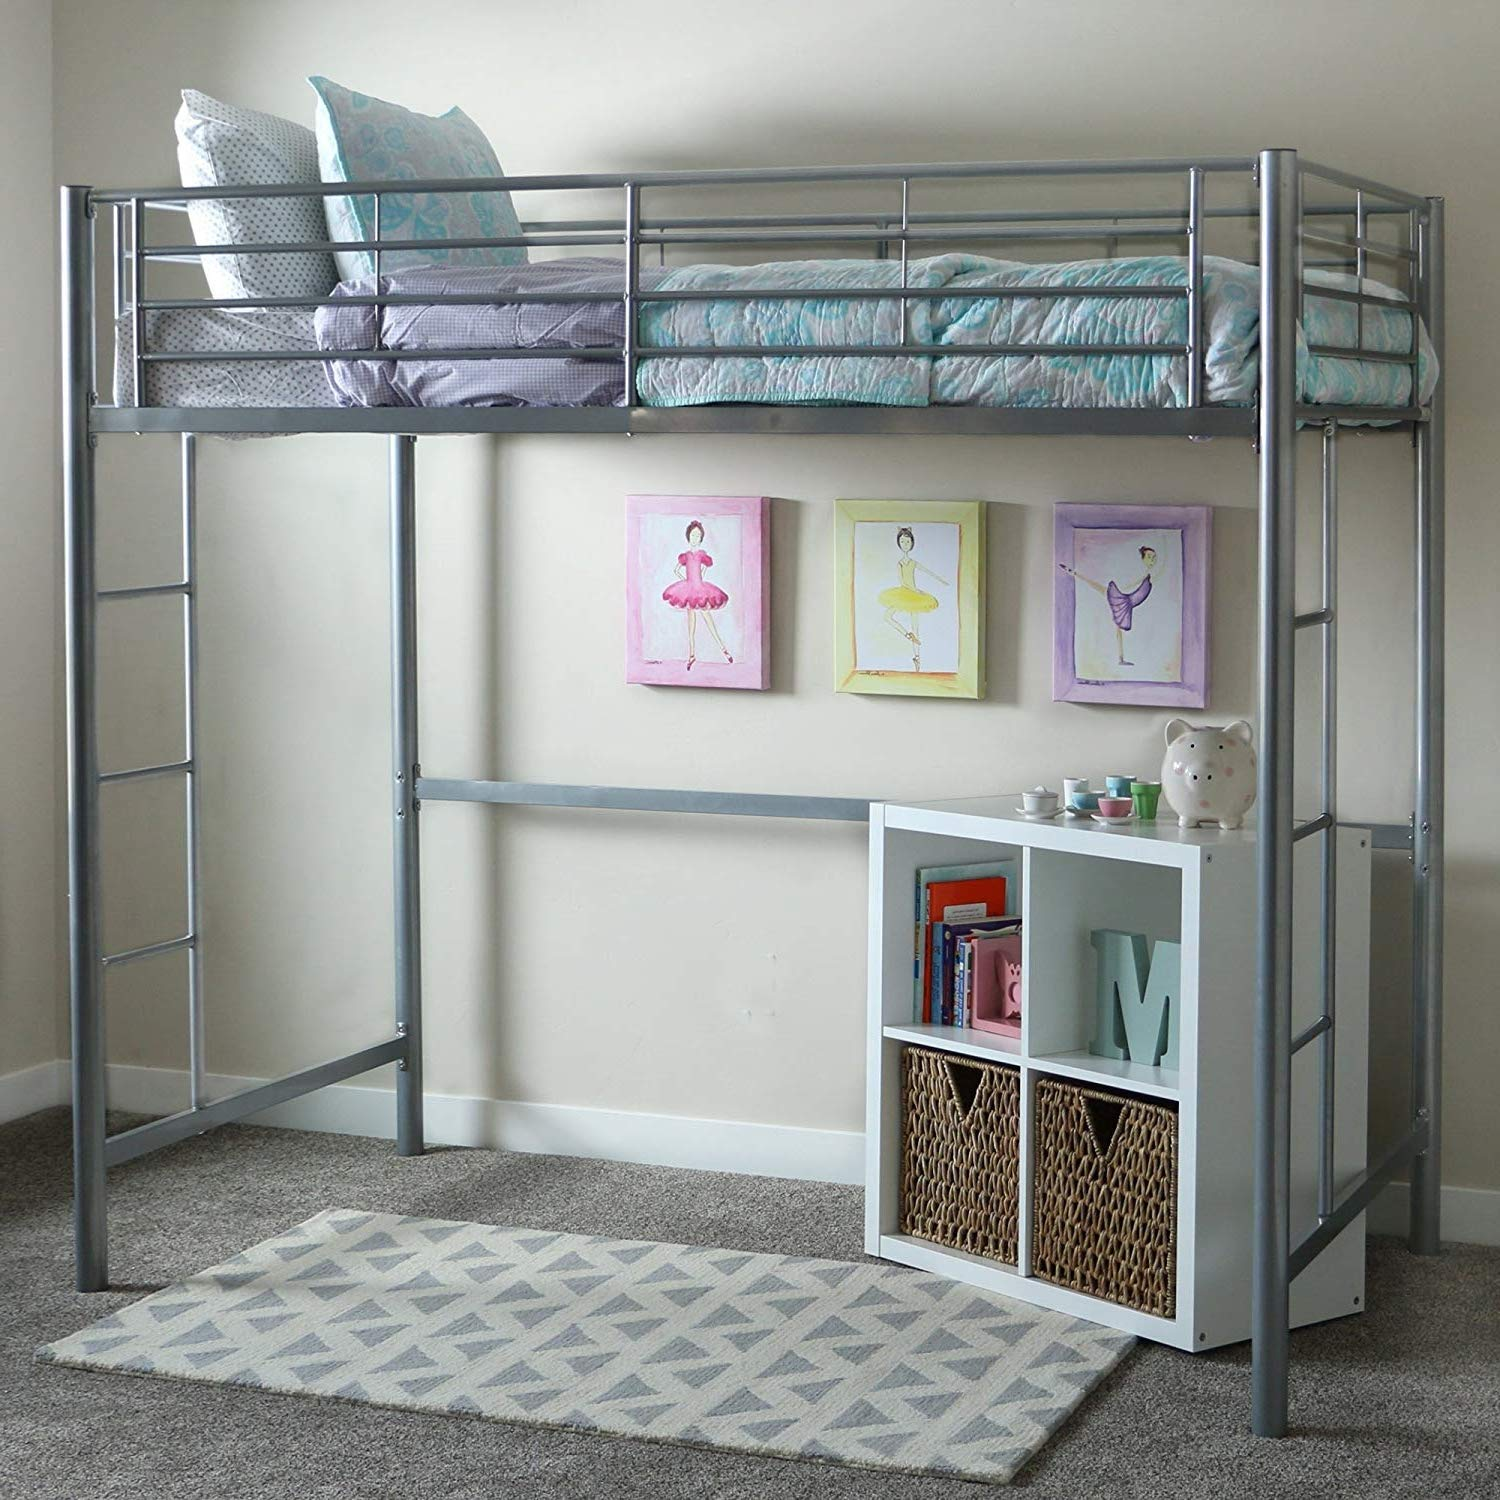 Bunk Beds for Kids Toddler Twin Metal Loft Silver Your Child Will Sleep in Style and Great Solution for Your Space Saving Needs by HomeTeks